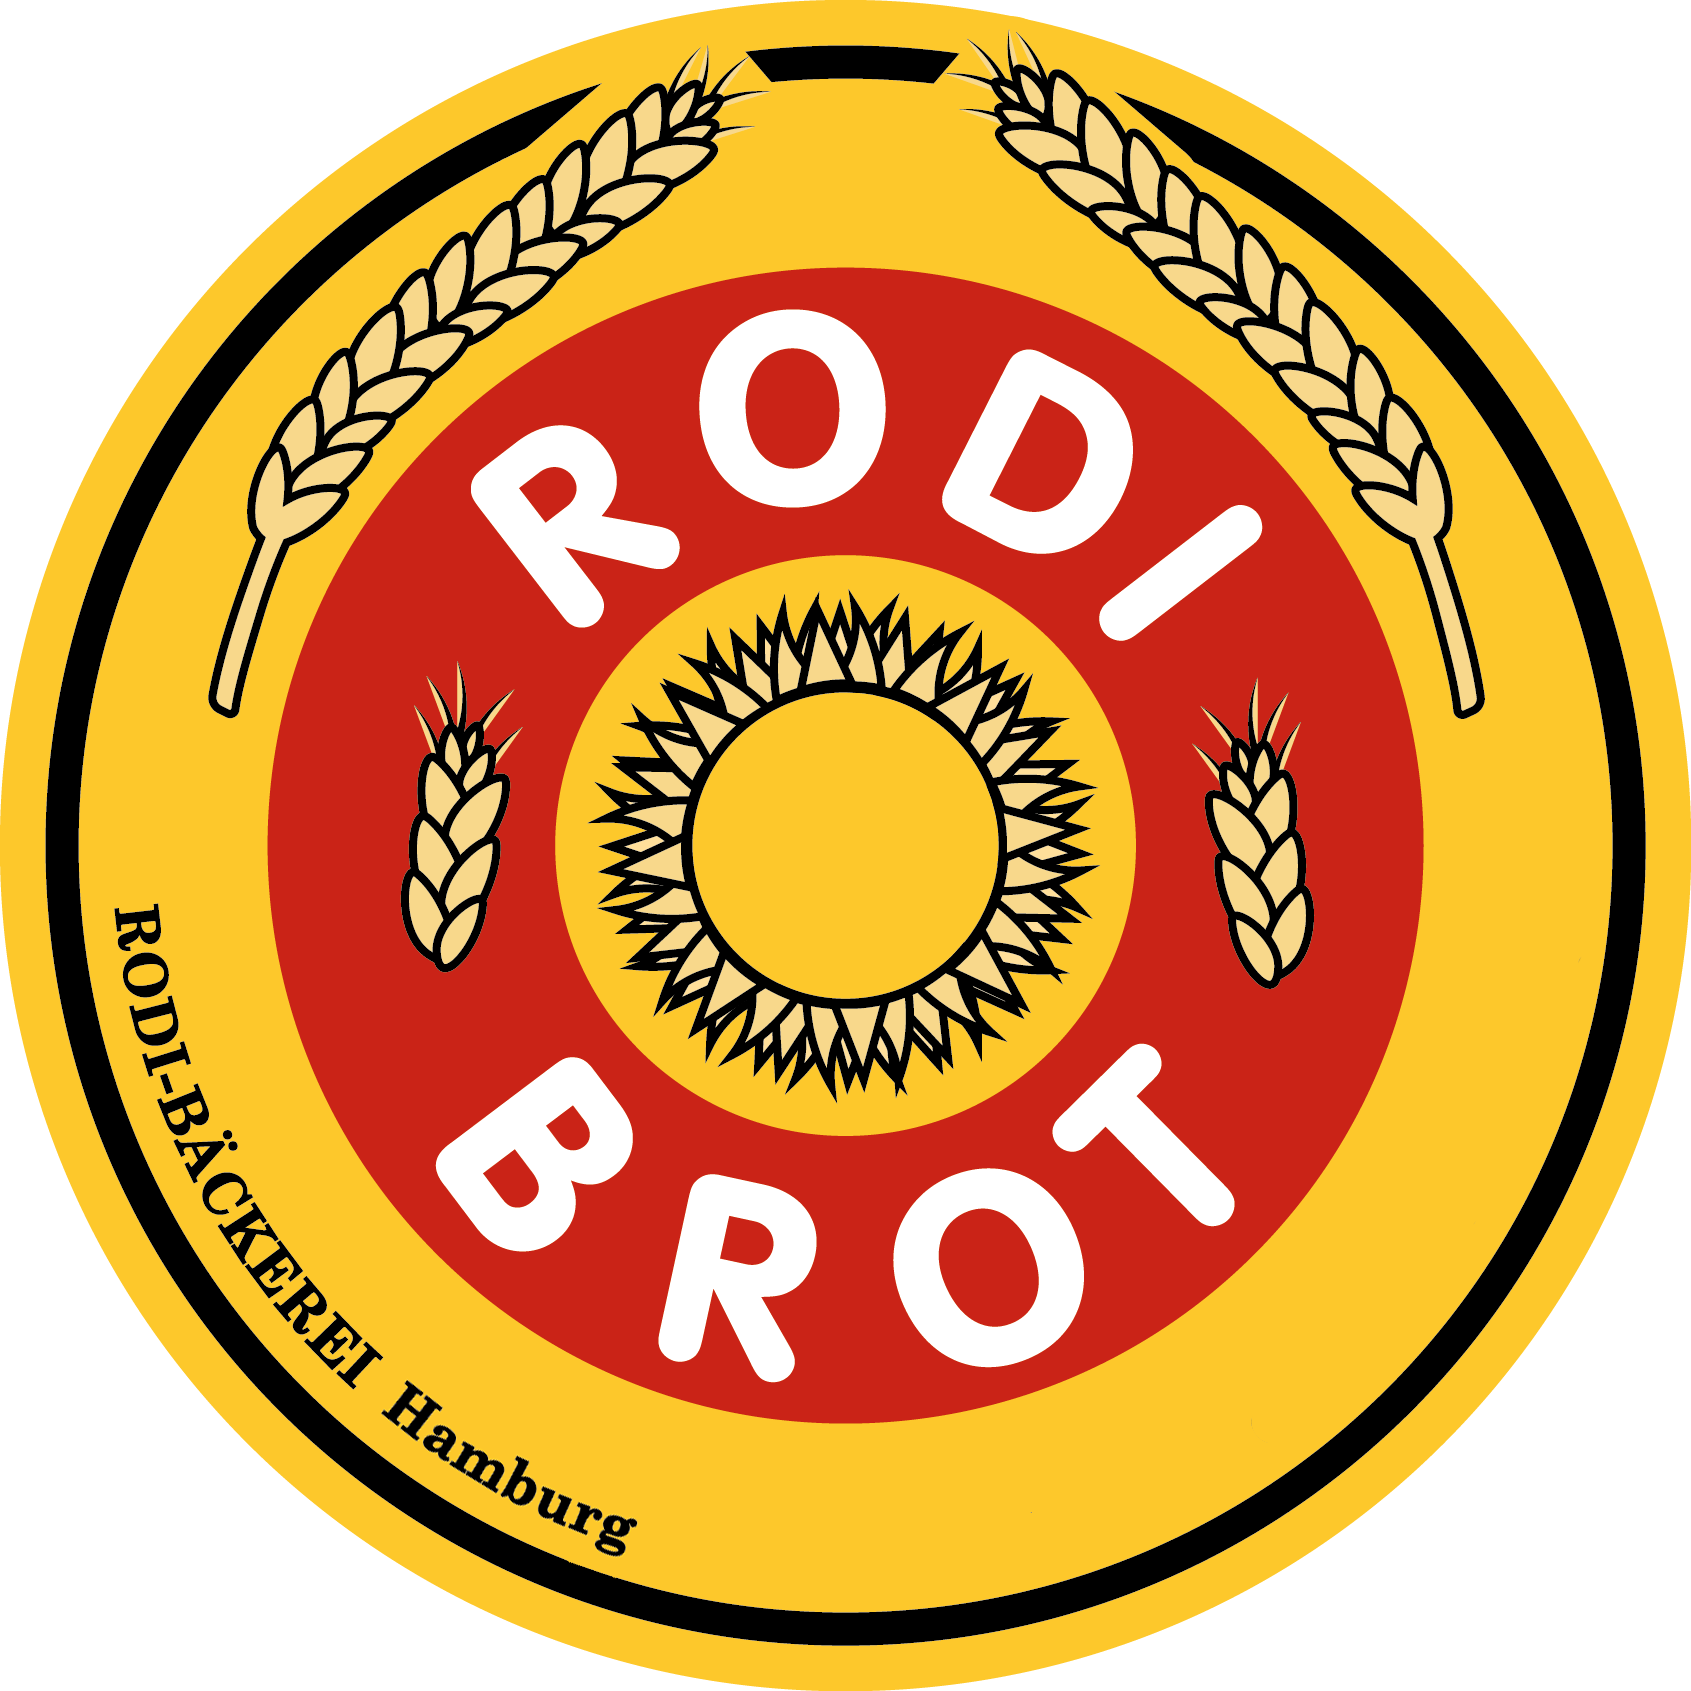 Rodi Brot - Bäckerei in Hamburg